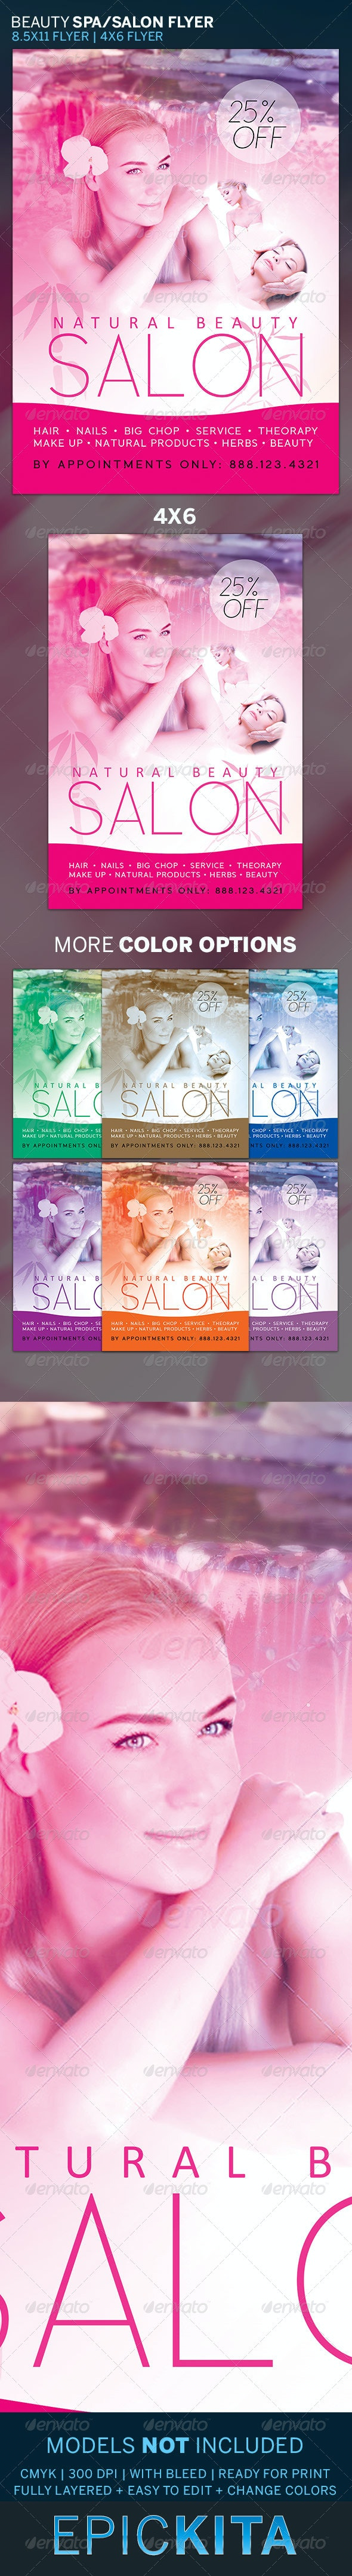 Beauty Salon and Spa Flyer Template - Commerce Flyers